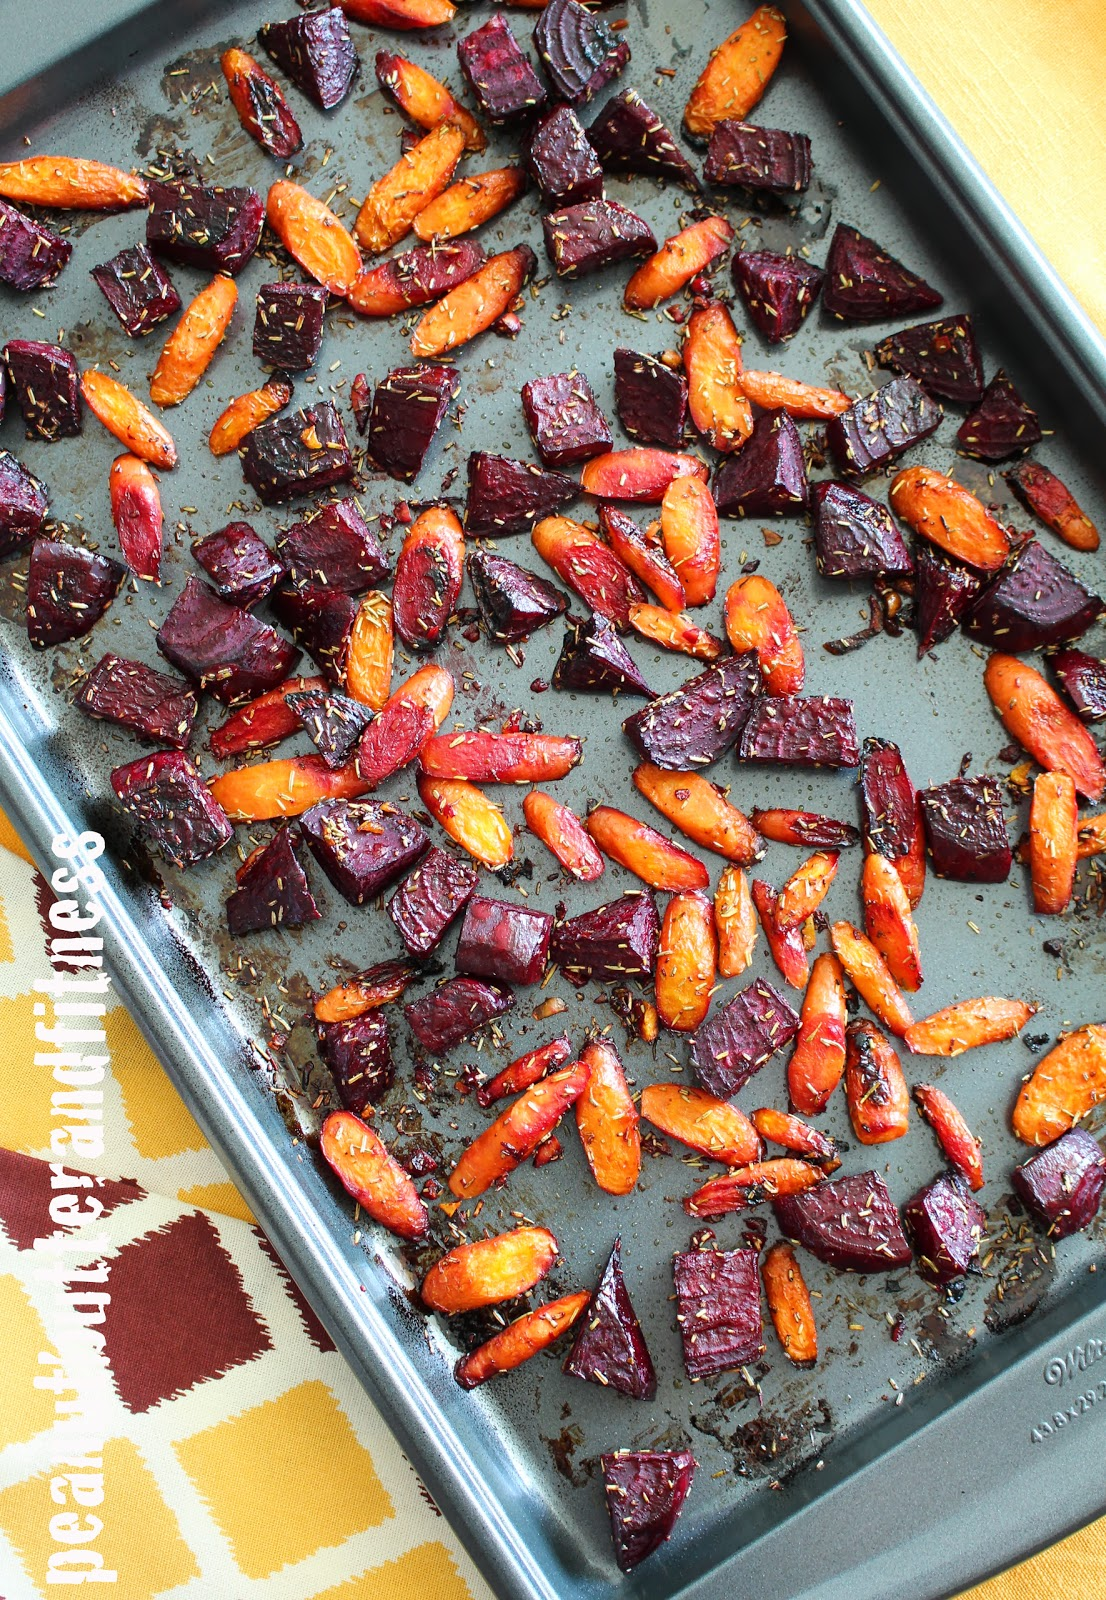 PEANUT BUTTER AND FITNESS: Rosemary Roasted Beets and Carrots